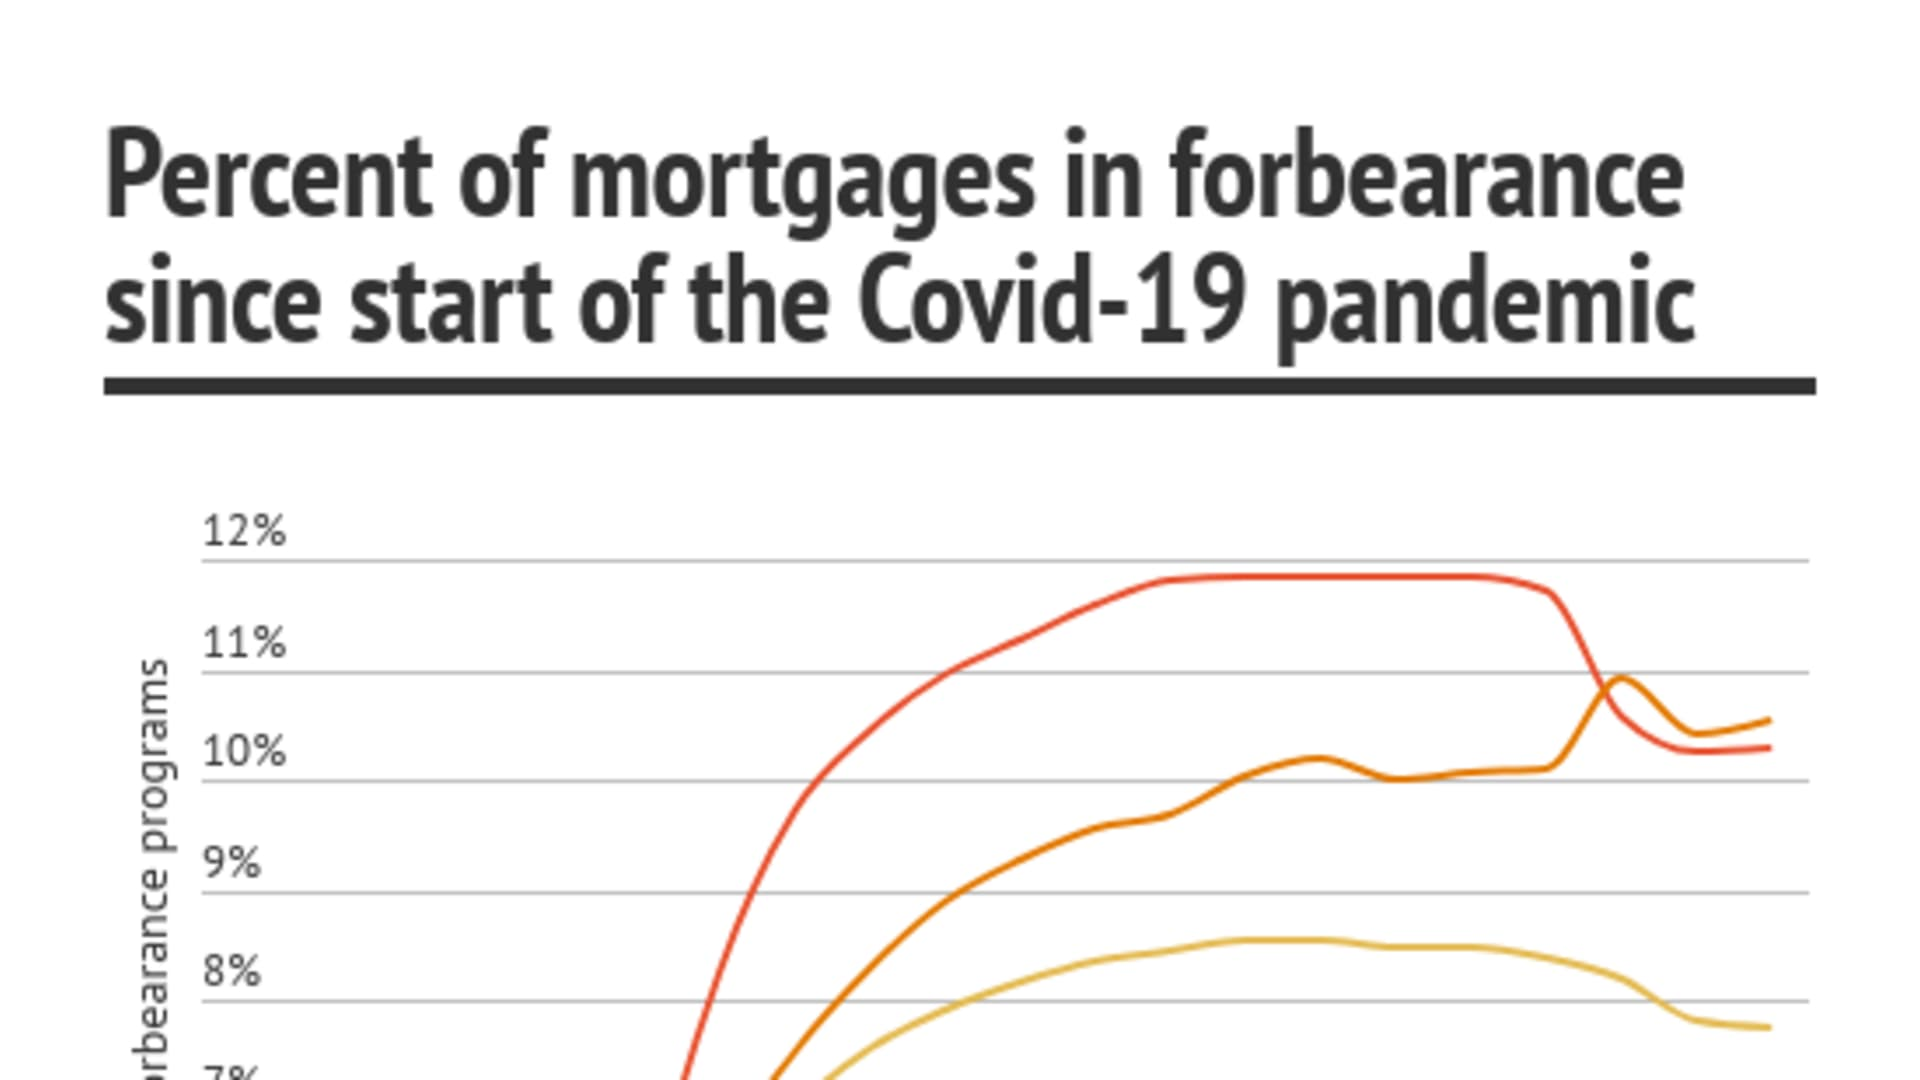 As of July 5, the MBA calculates that 8.18% of all active mortgages are in some type of government or private-sector forbearance program. That's down slightly from the high in early June of 8.55% of mortgages in forbearance.